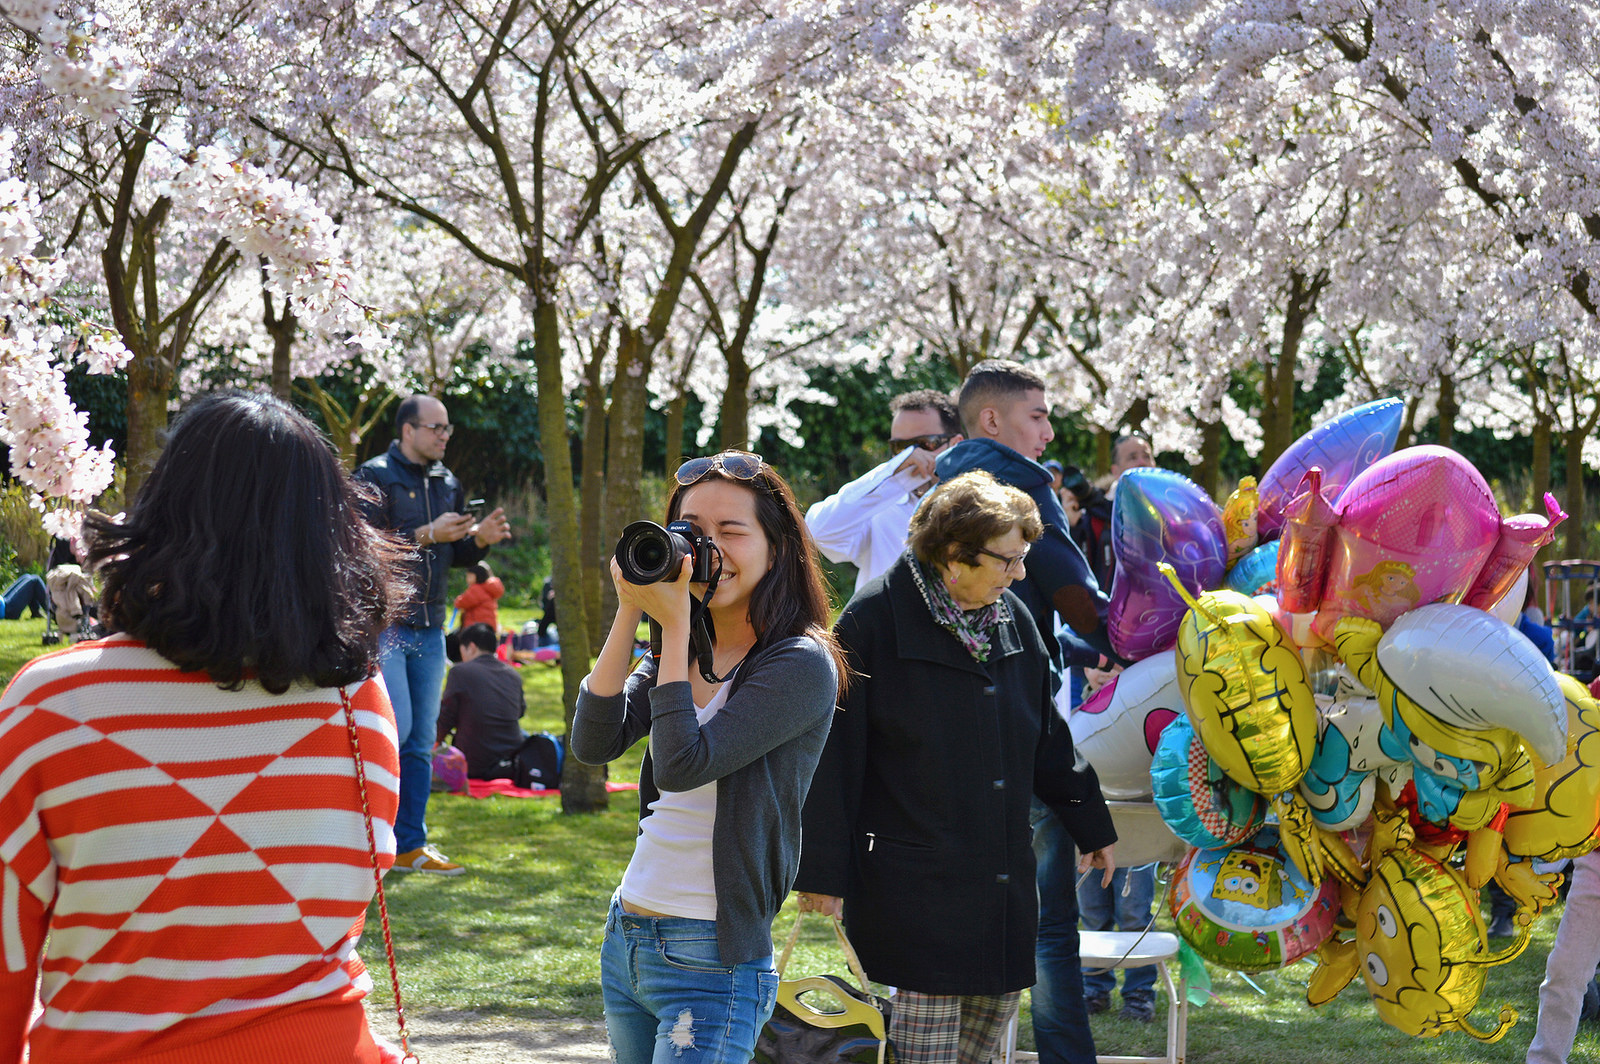 Taking photos with the cherry blossoms in Amstelveen.